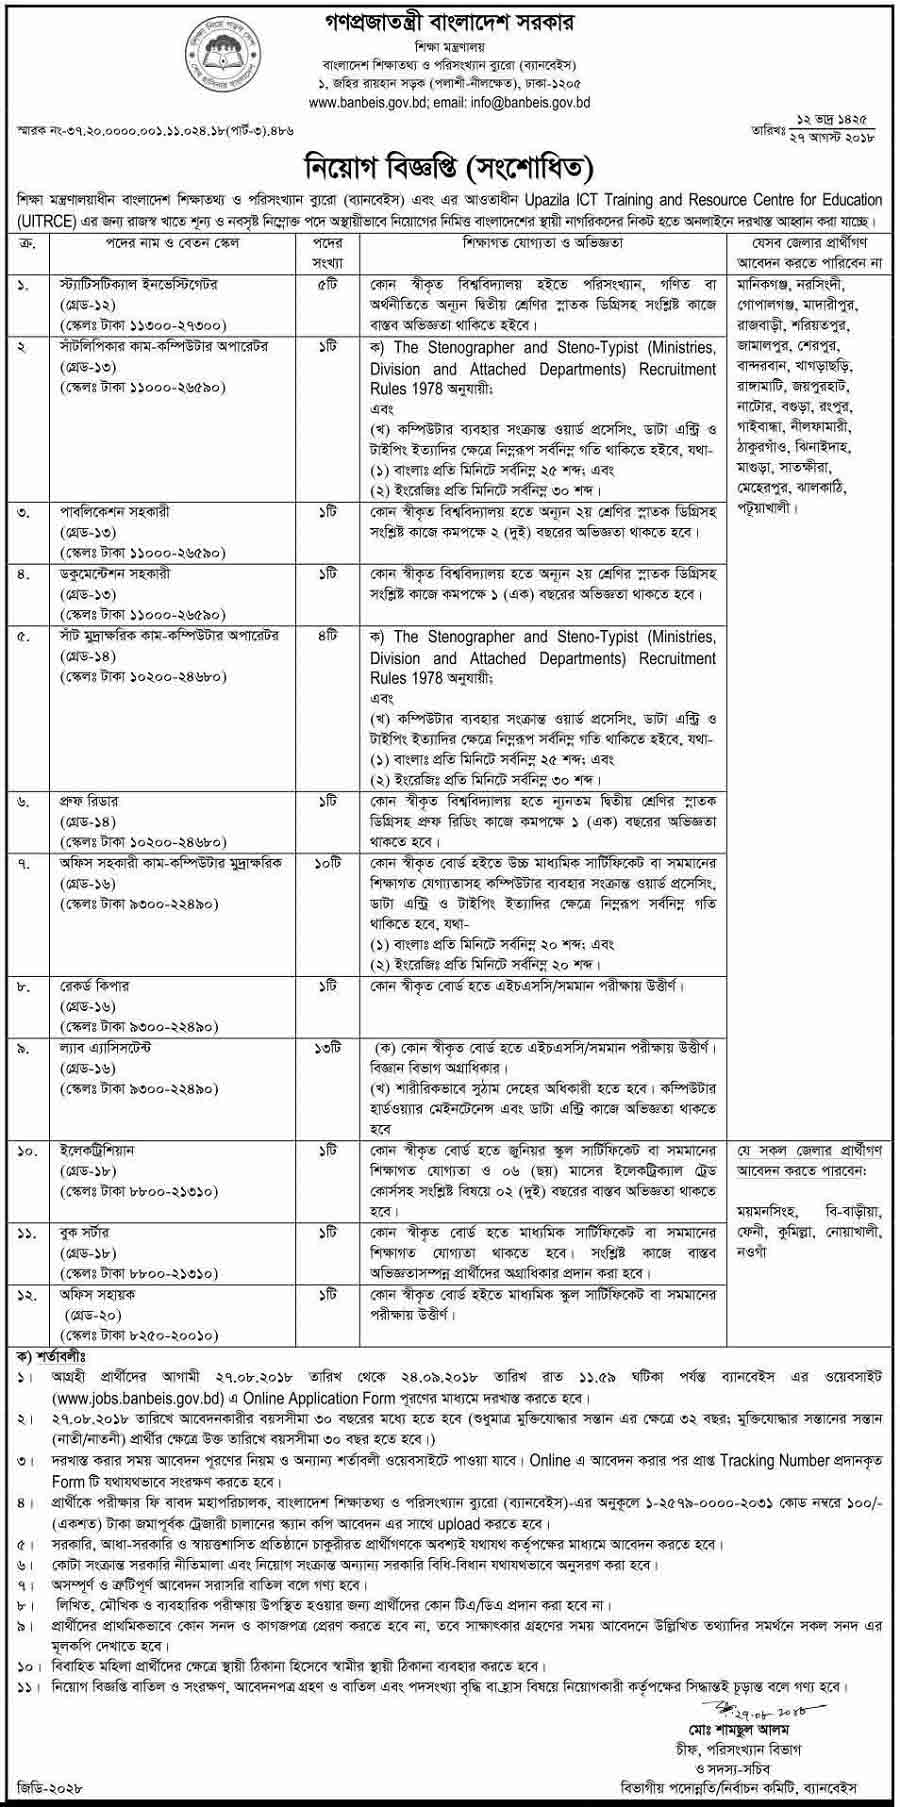 BANBEIS-Bangladesh Bureau of Educational Information and Statistics Job Circular 2018